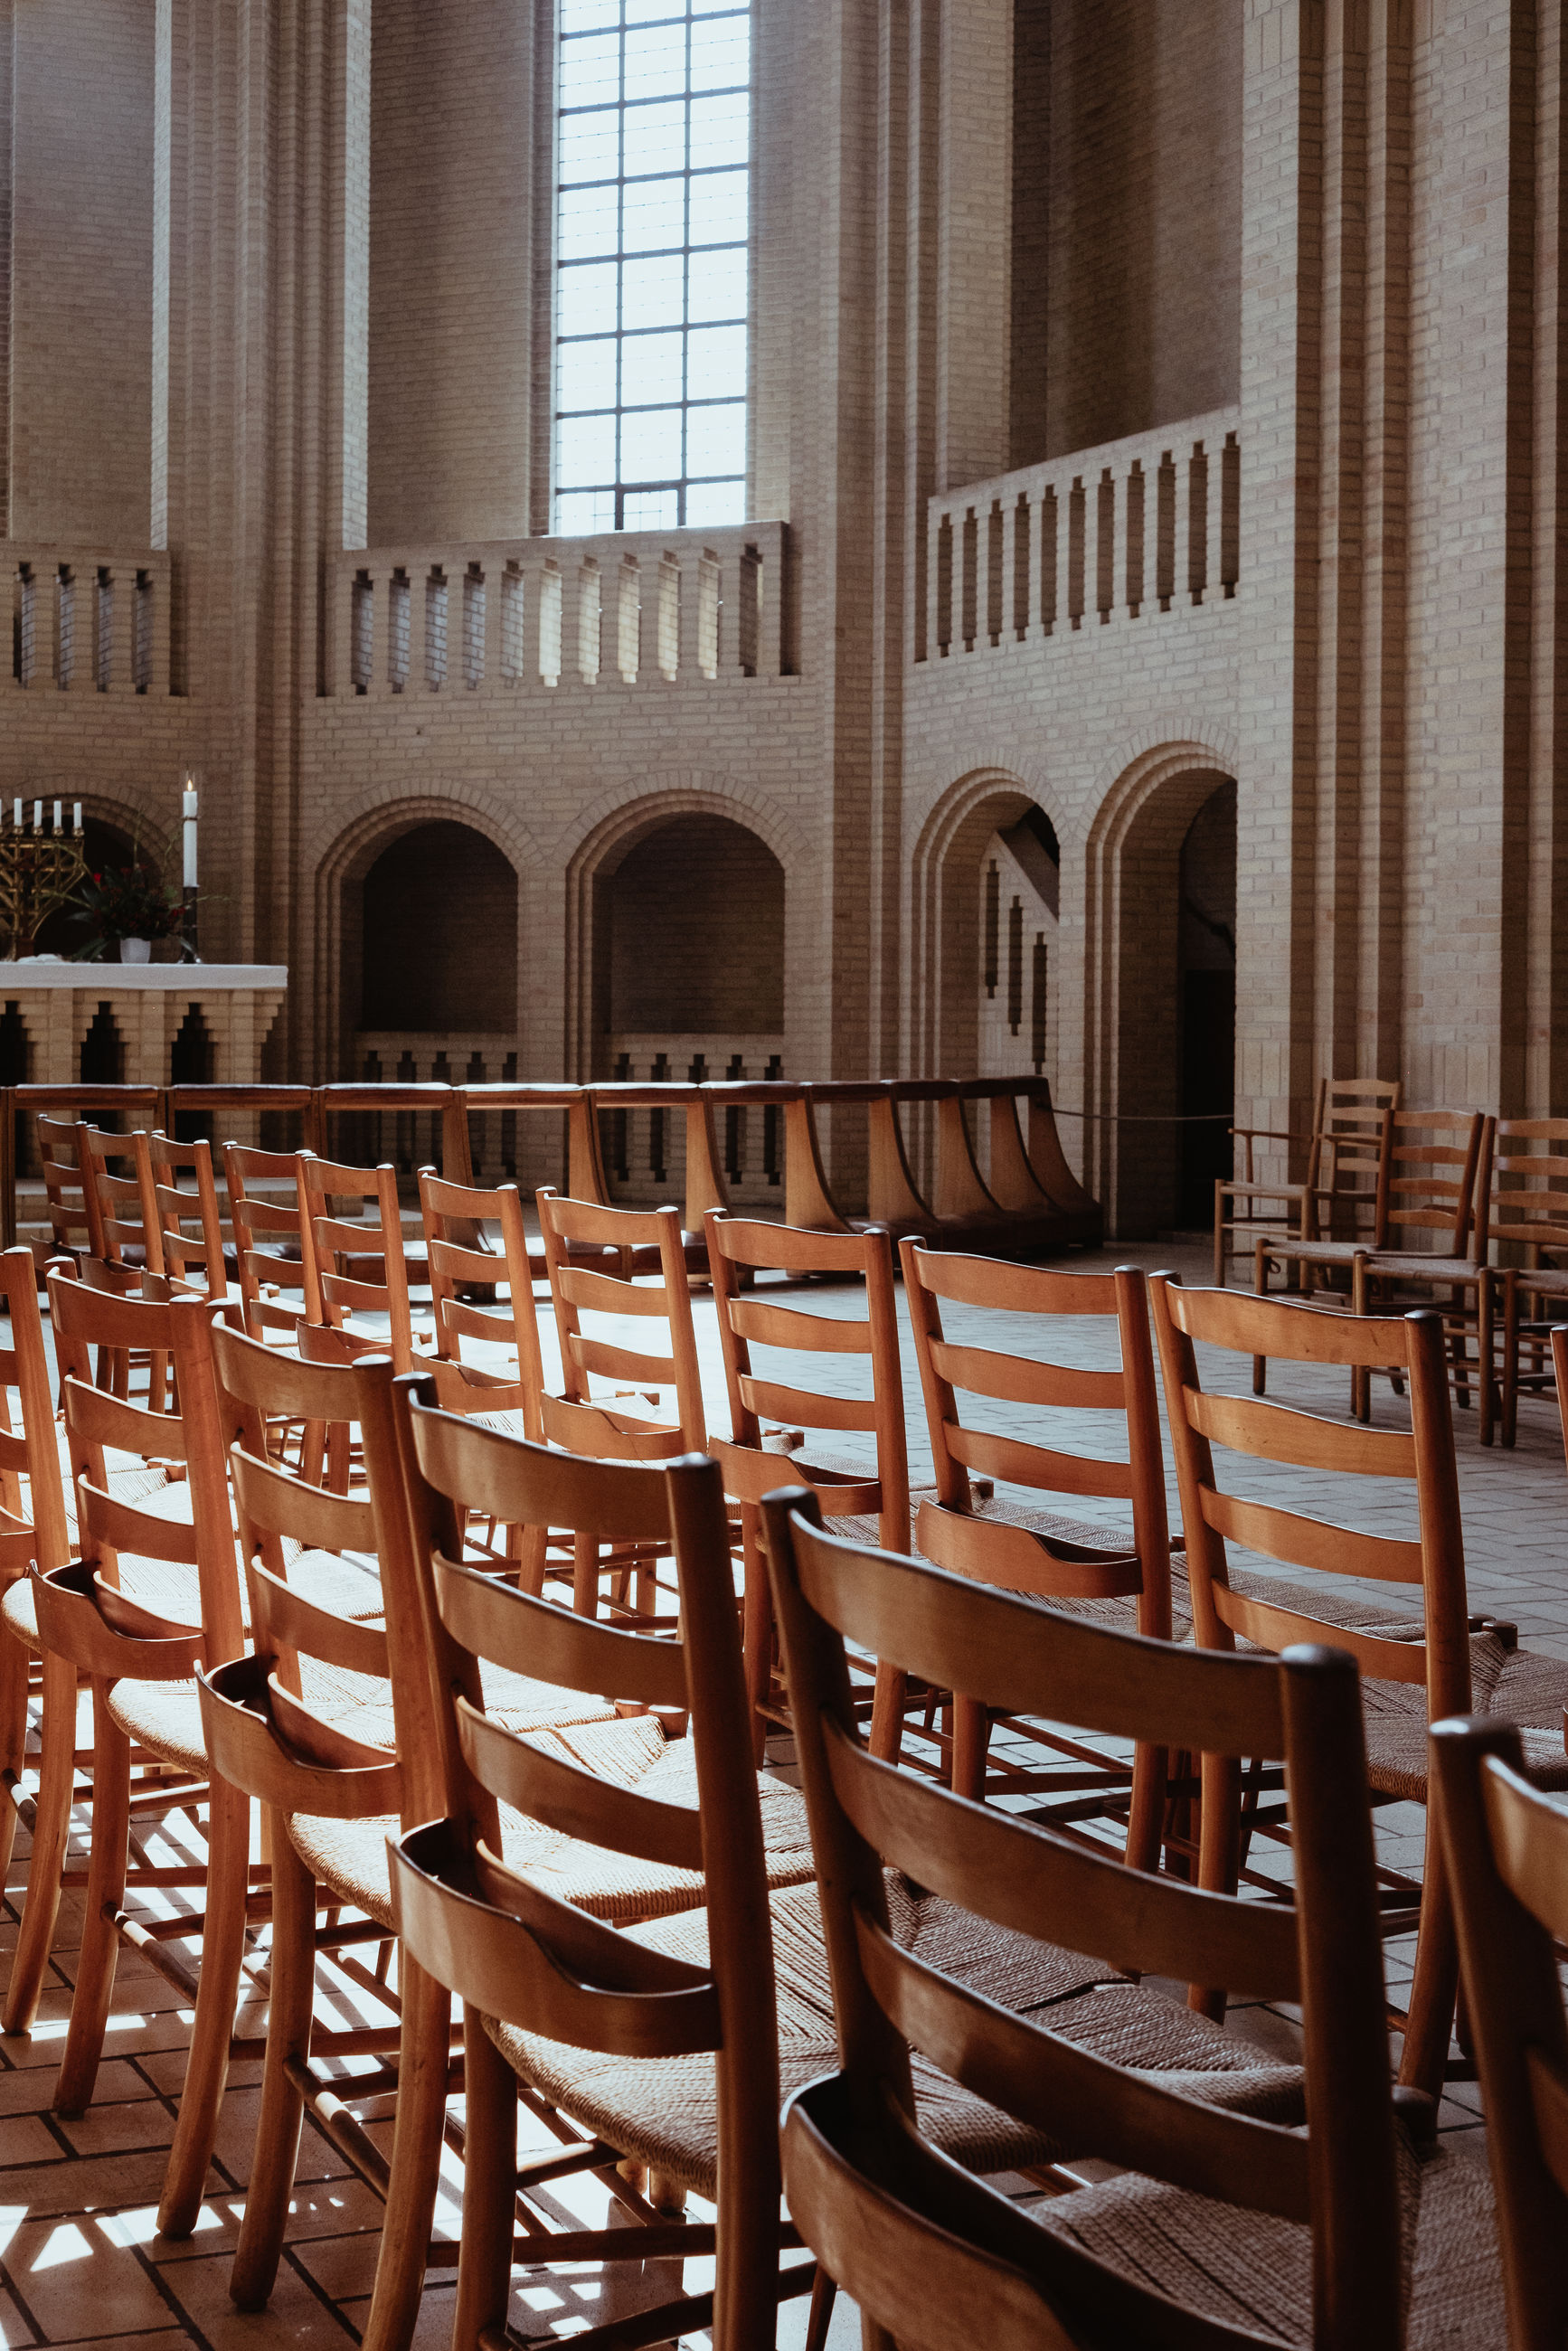 Wooden chairs in church